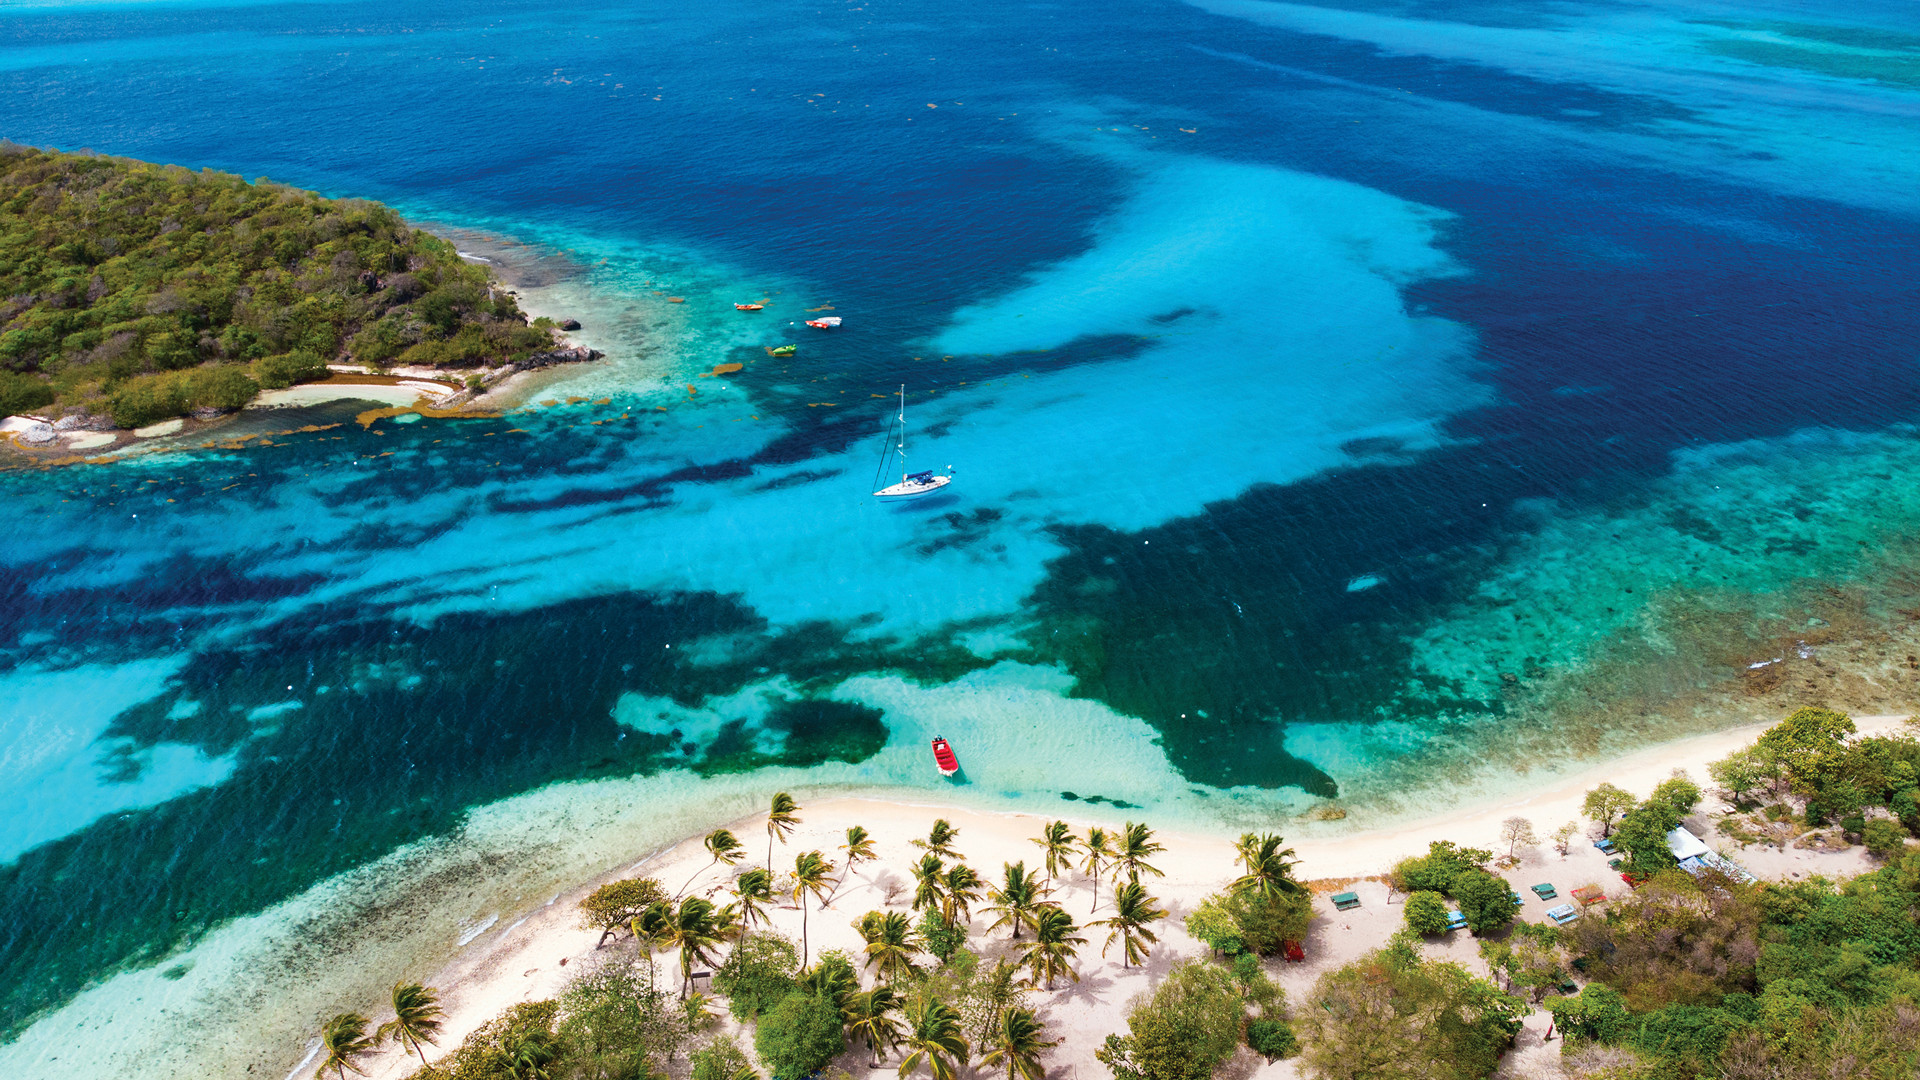 The blue seas of St Vincent & the Grenadines